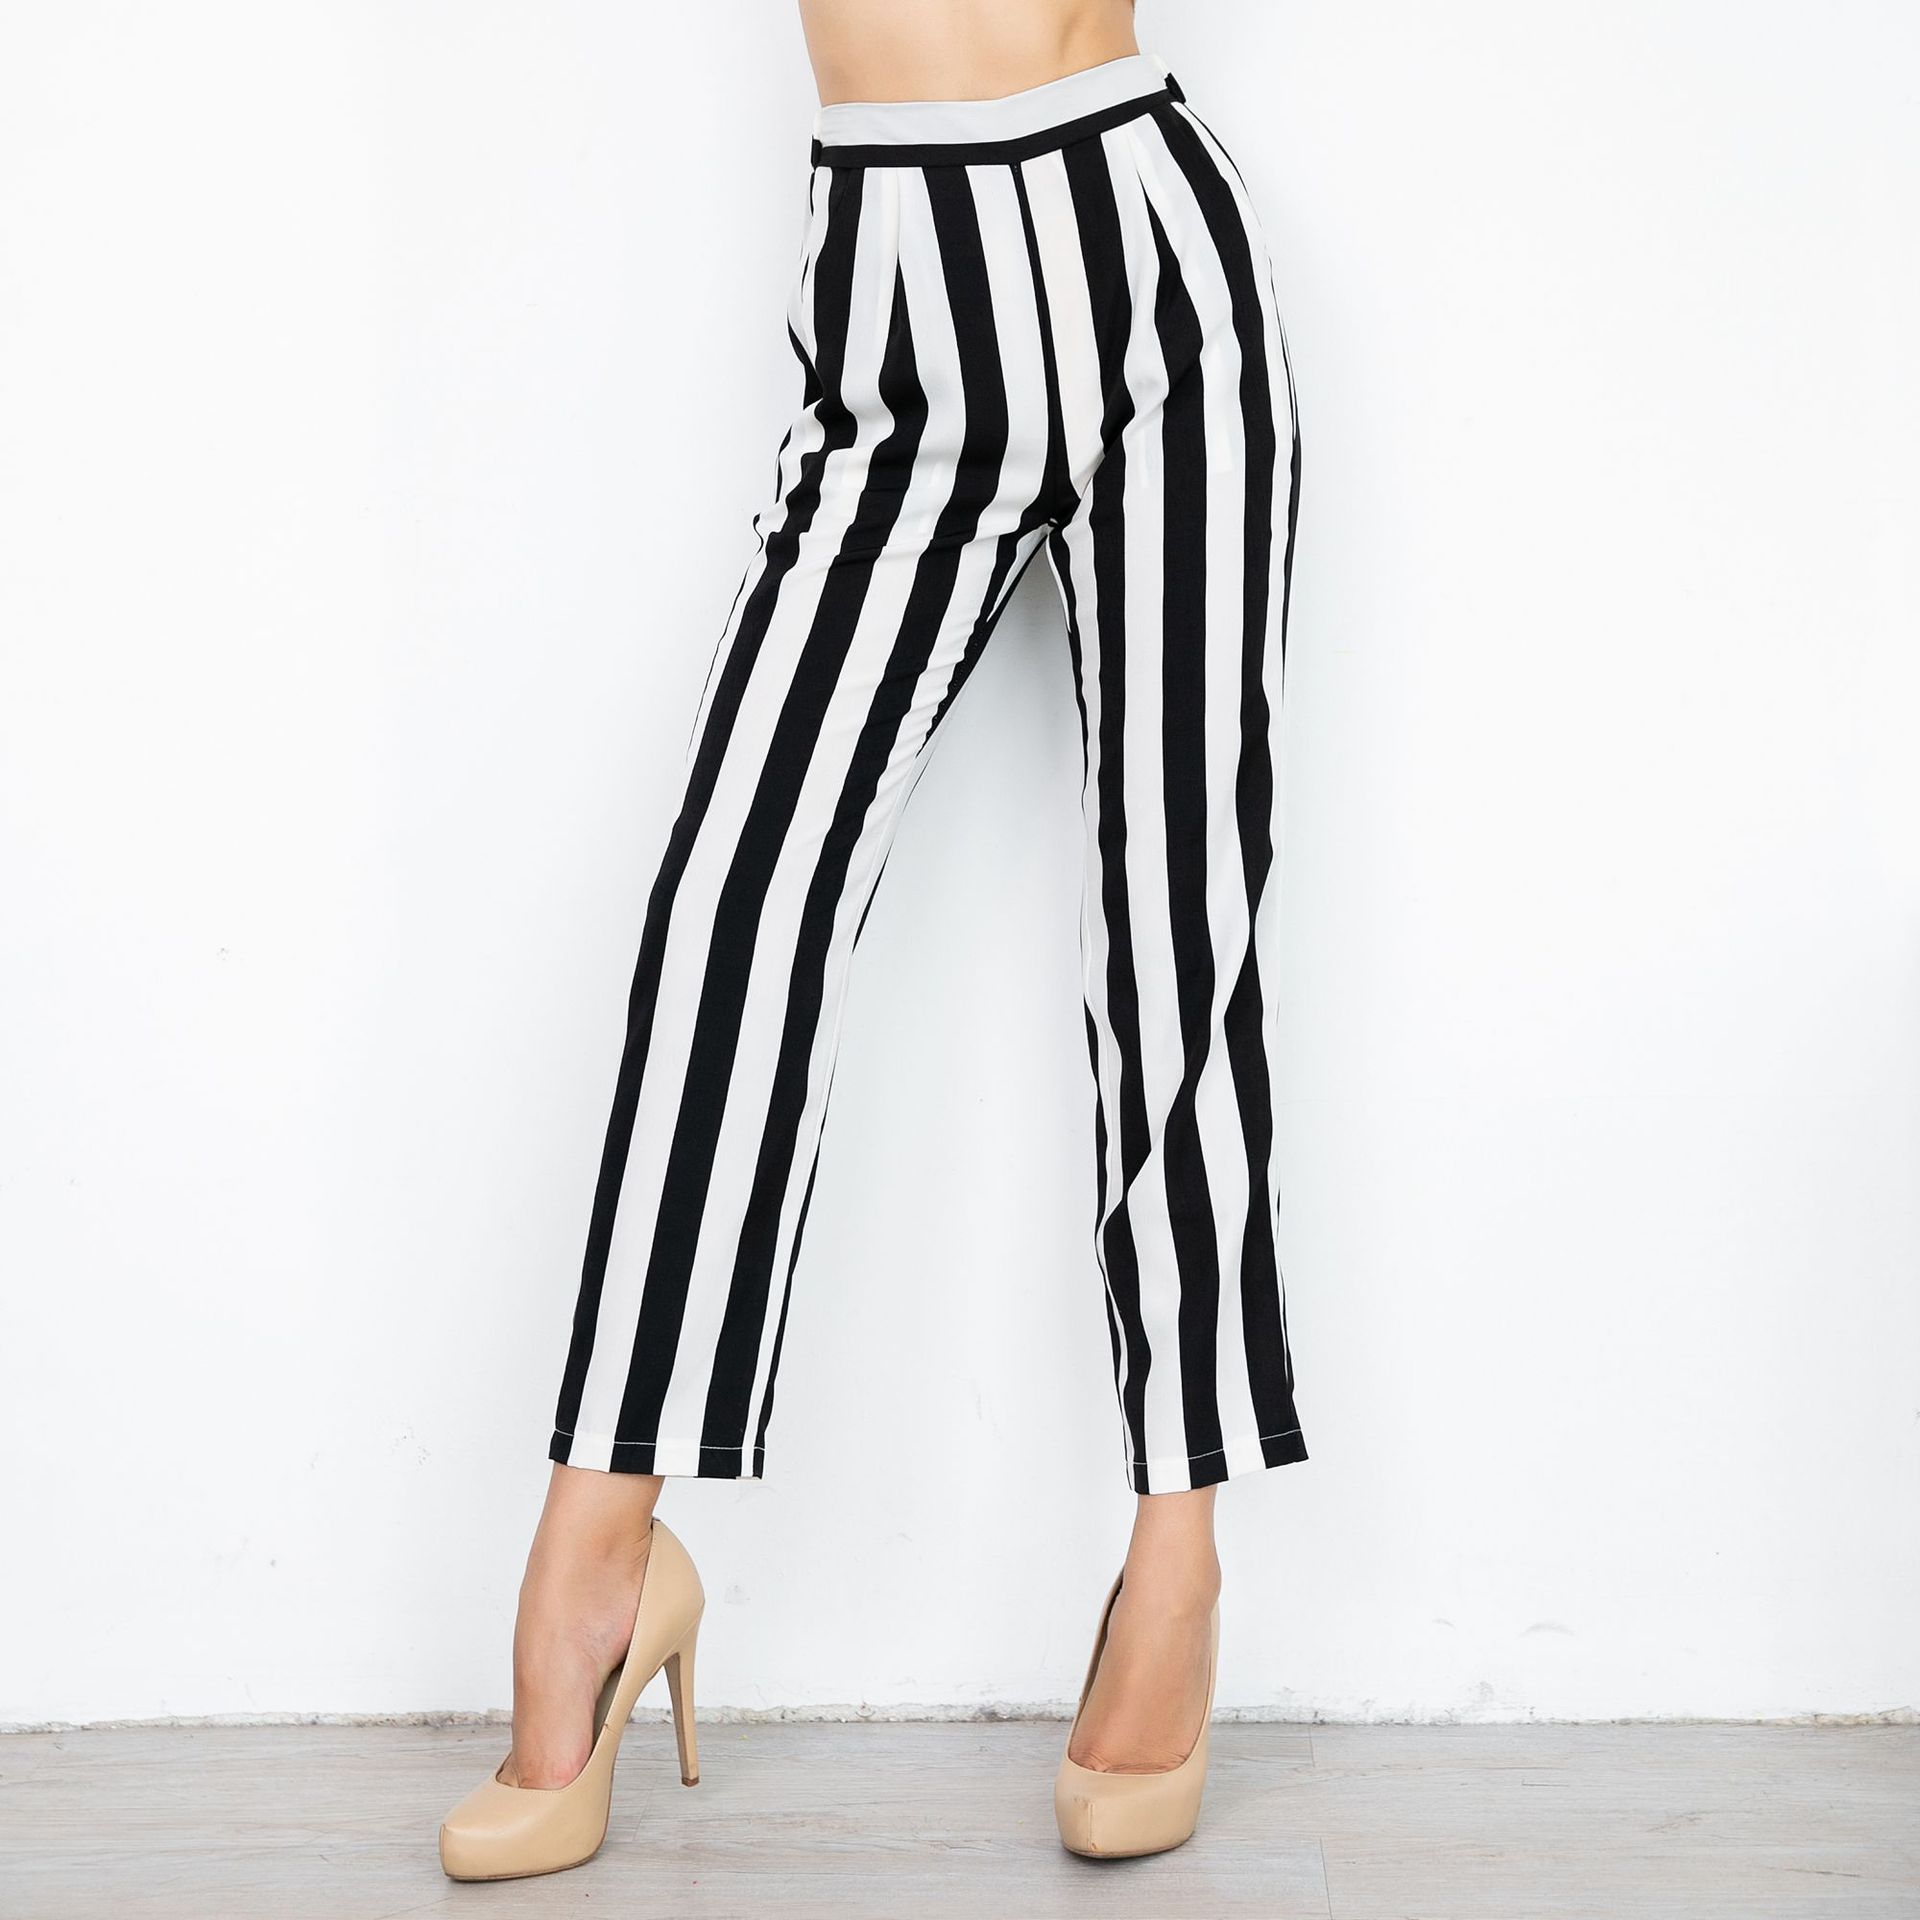 Europe And America WOMEN'S Dress Printed Stripes Straight-leg Pants WOMEN'S Casual Slacks Wholesale Black And White Stripes WOME